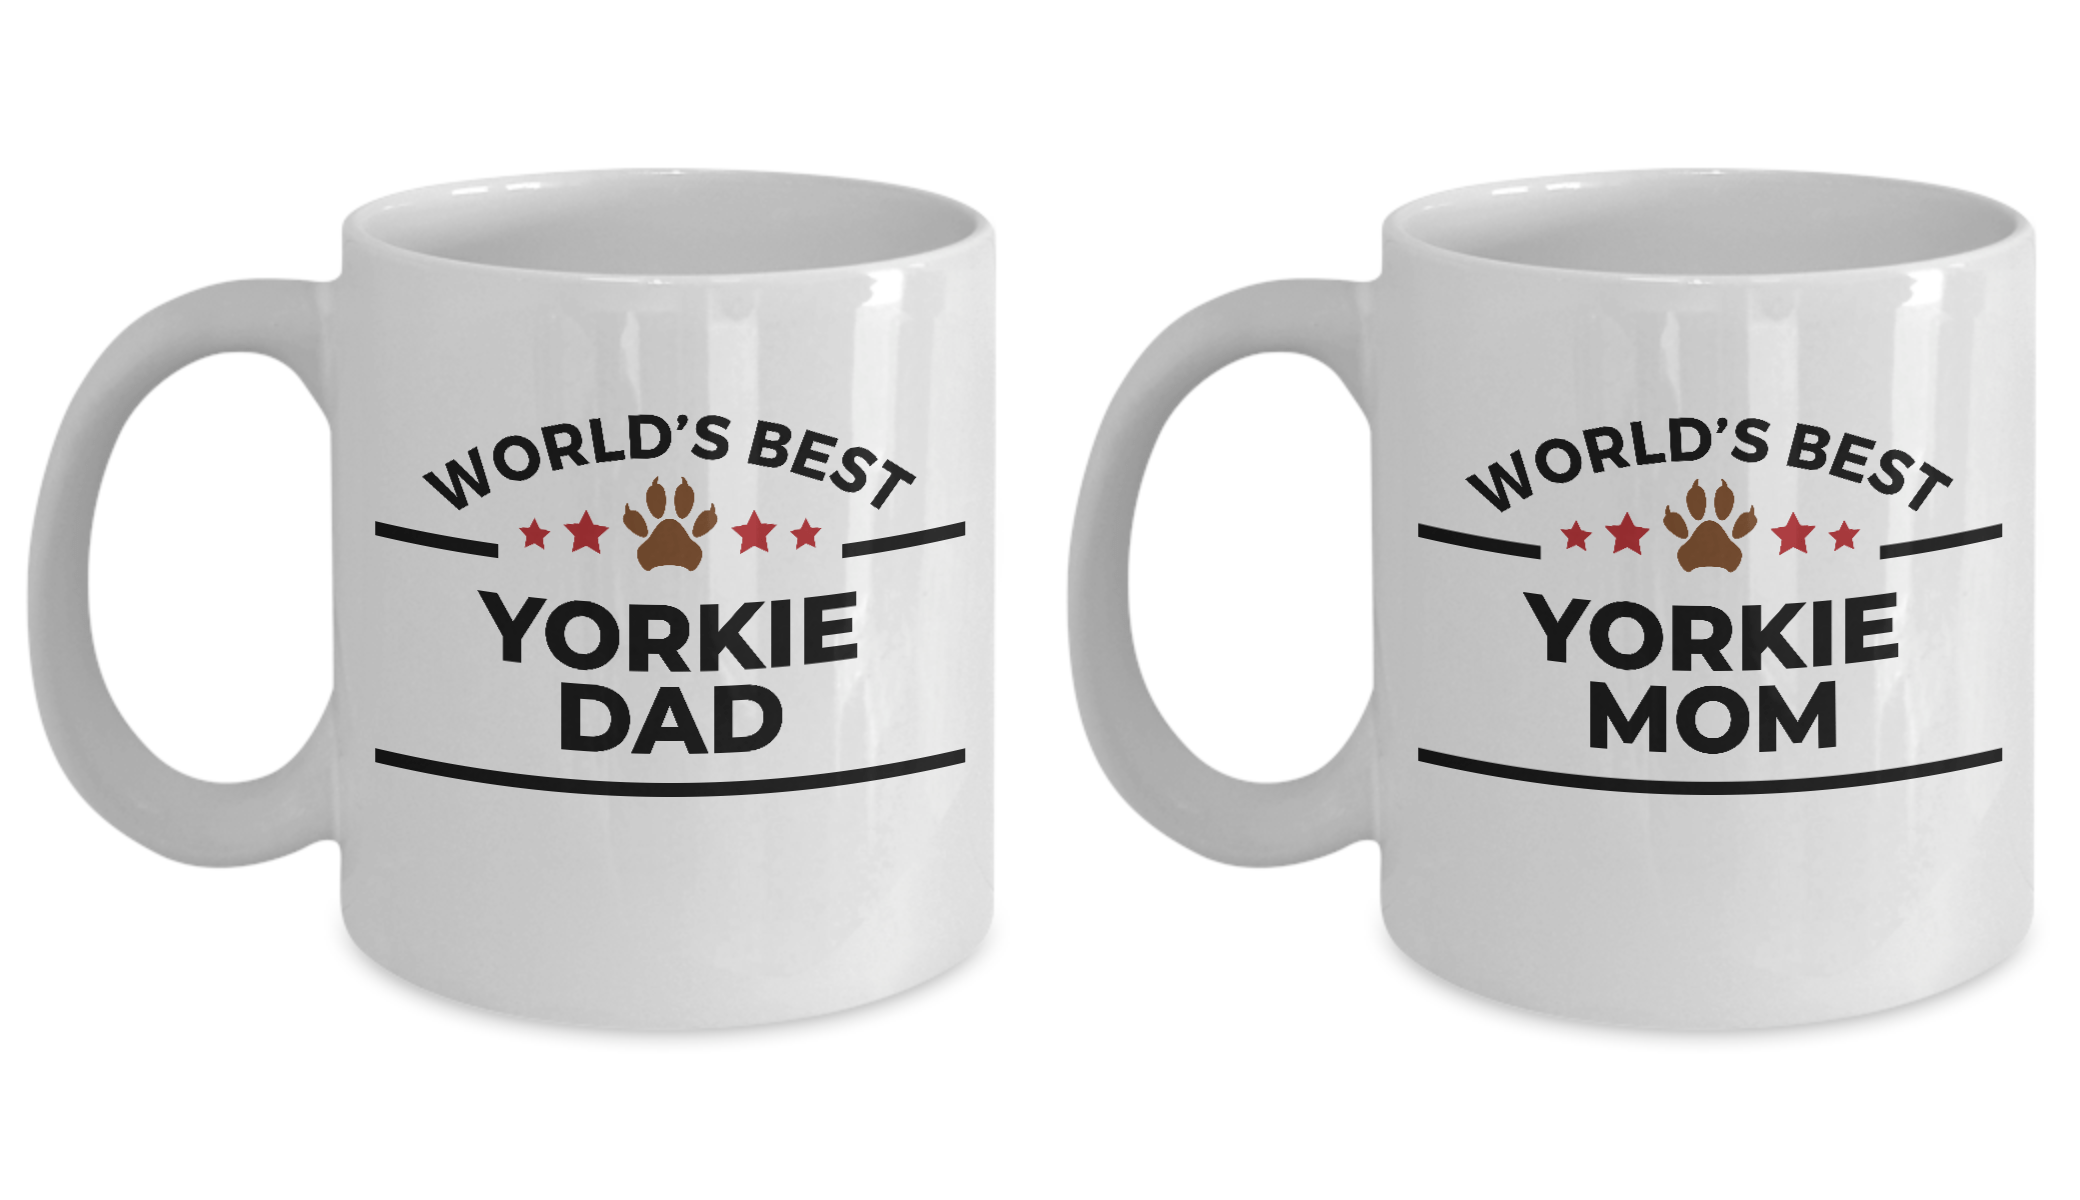 World's Best Yorkie Dad and Mom Couple Ceramic Mug - Set of 2 His and Hers